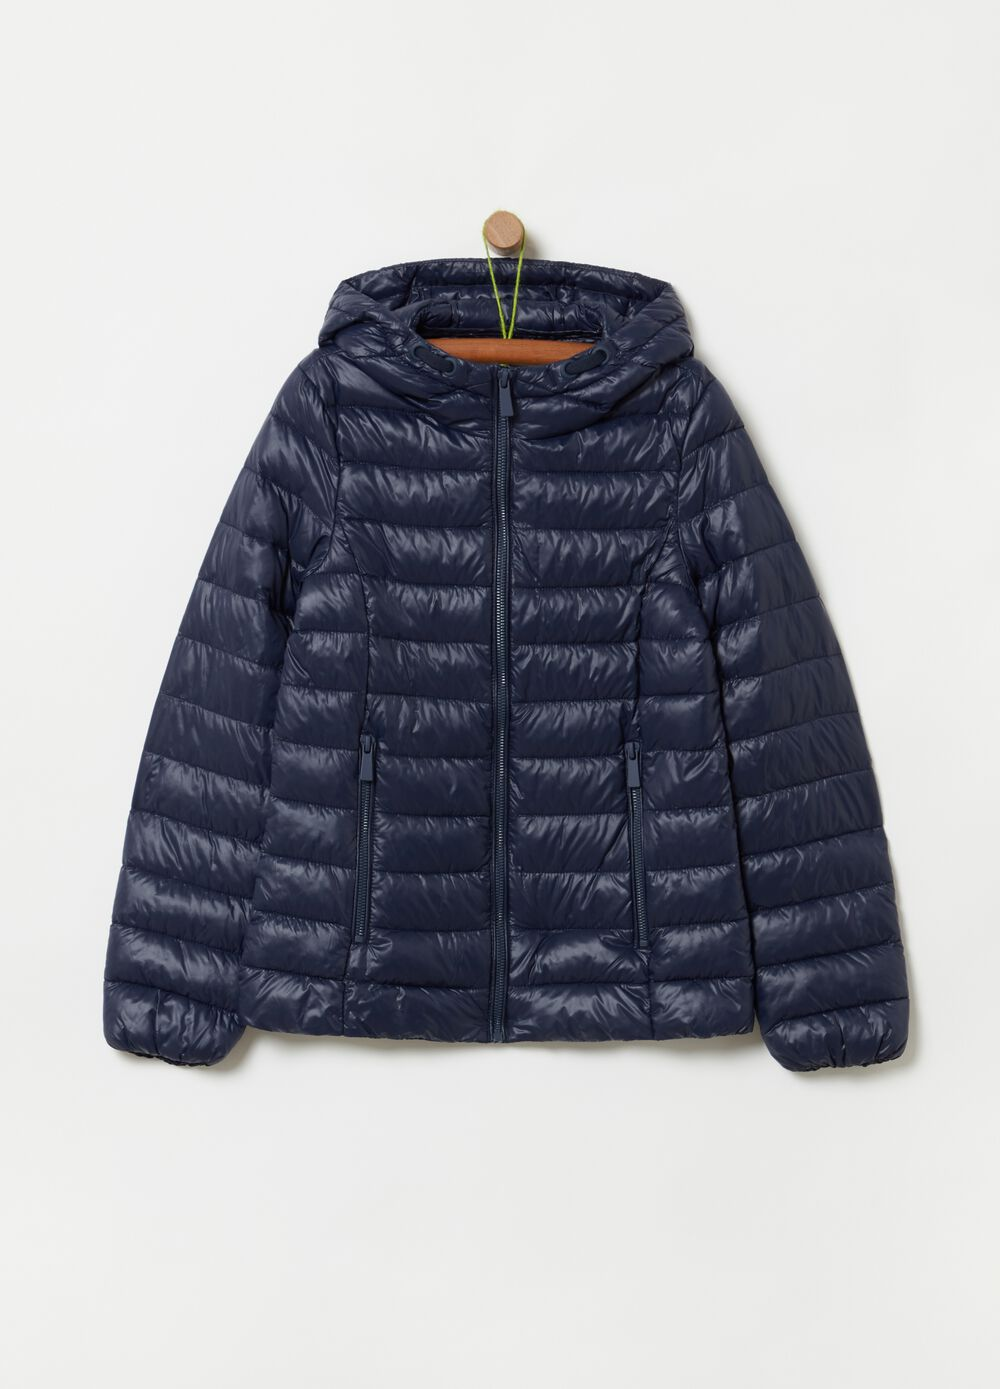 Ultra light quilted jacket with zip